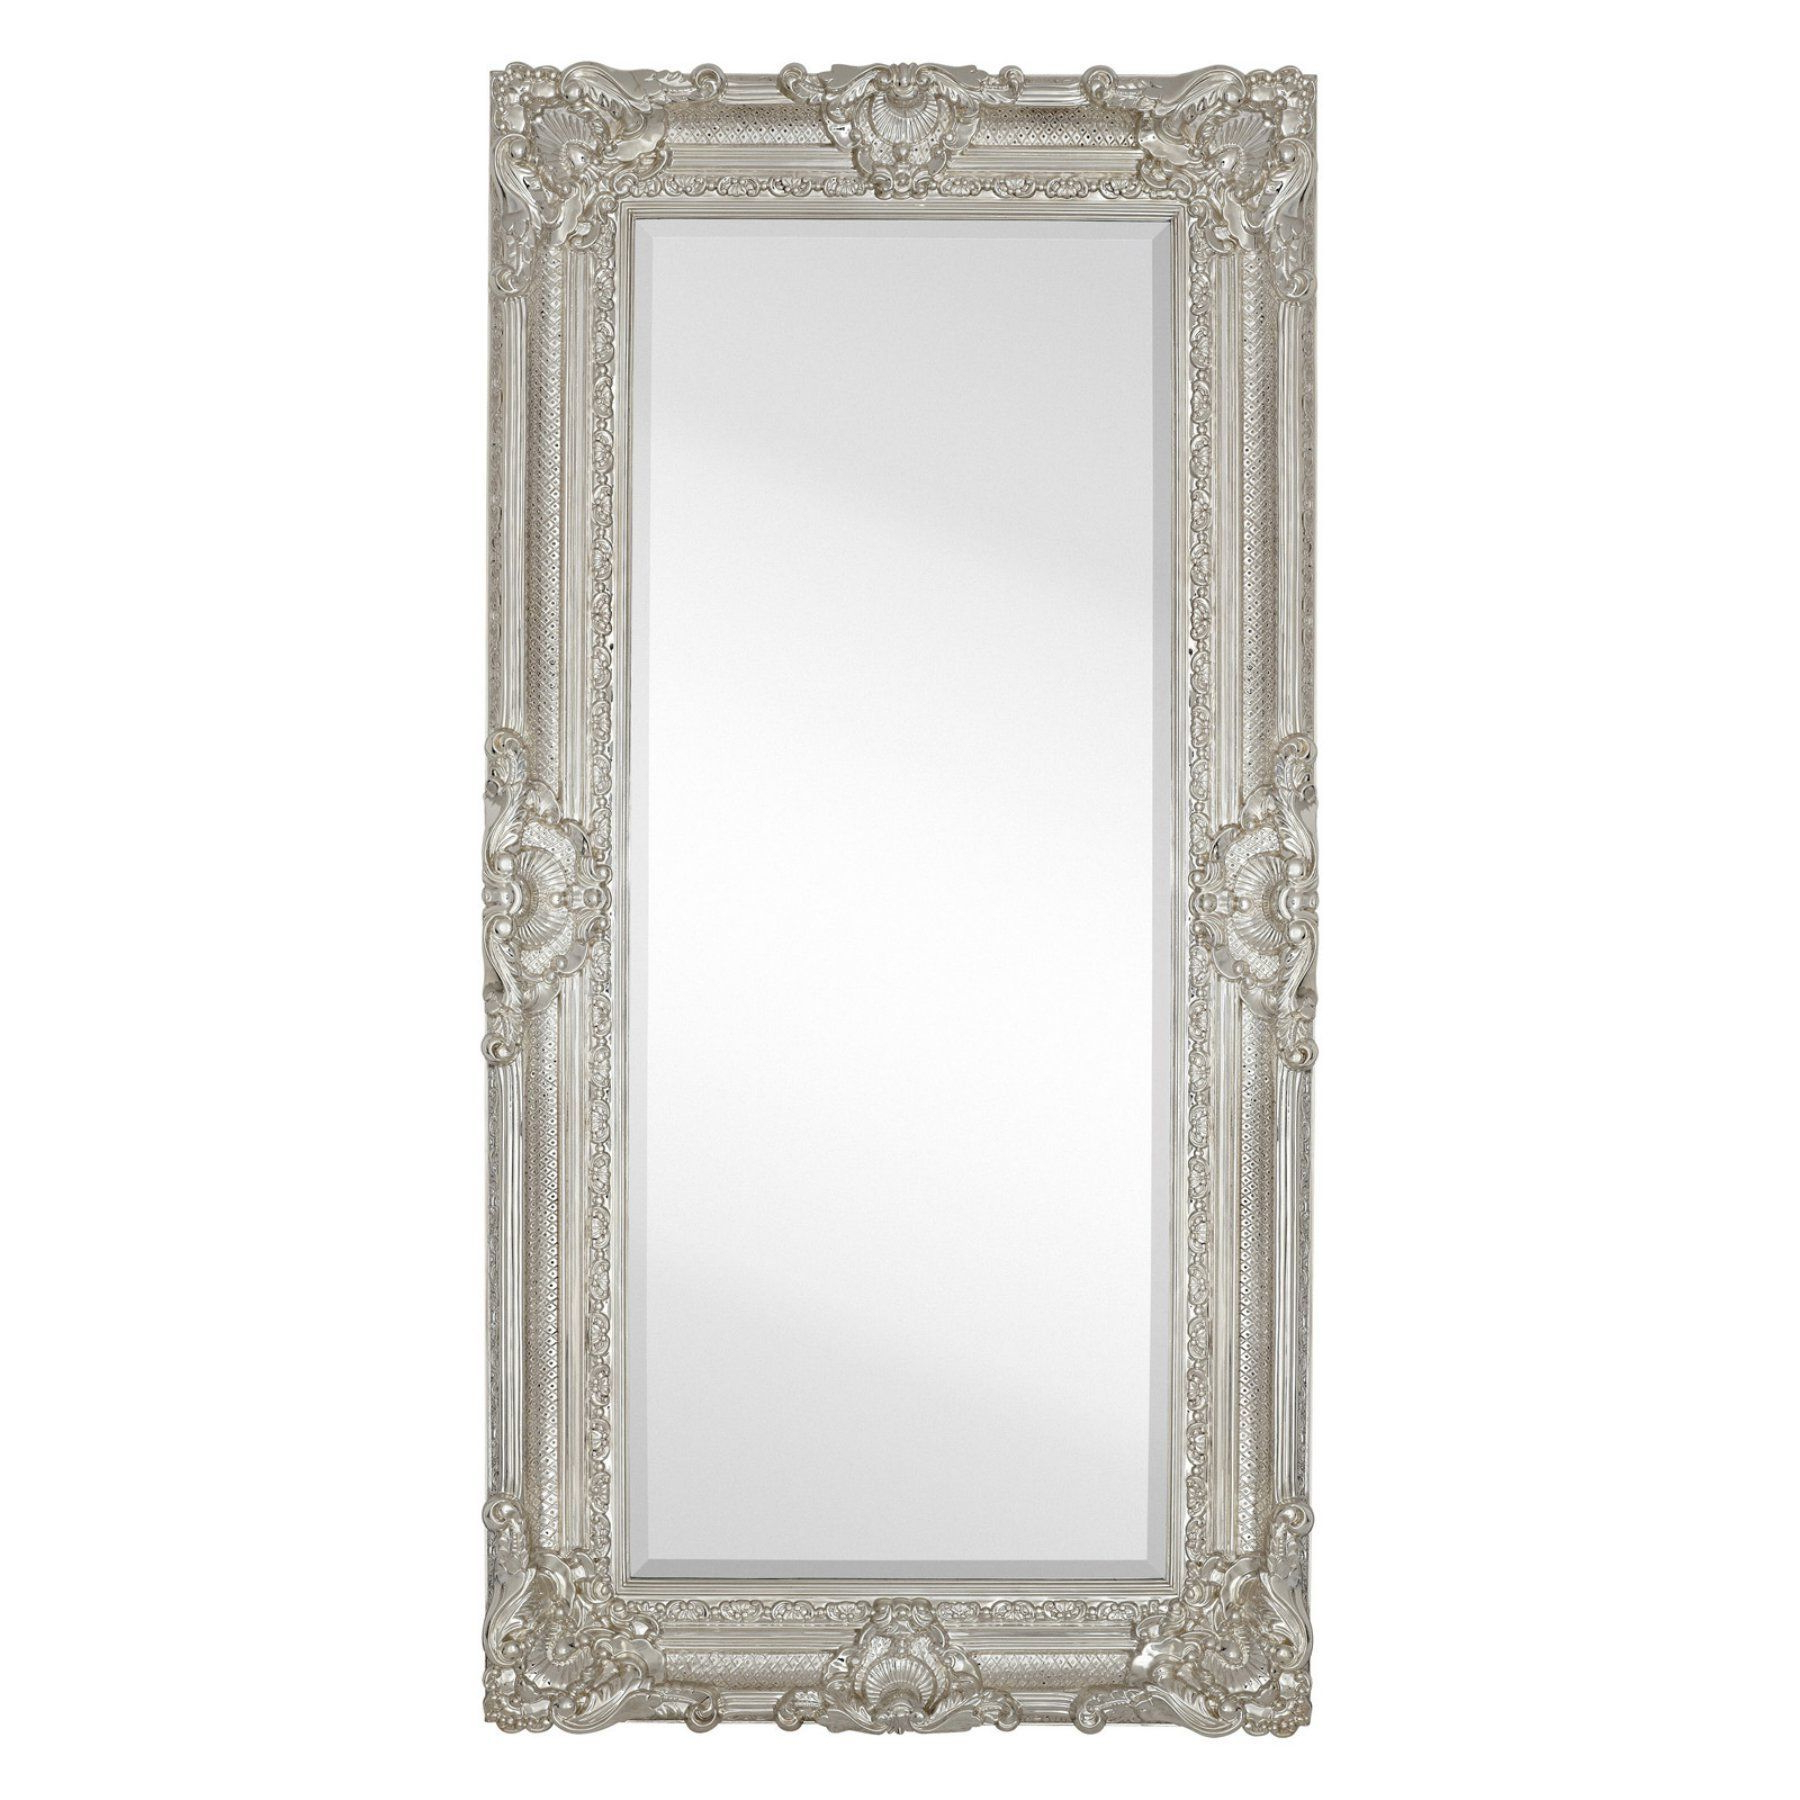 Most Recent Eriq Framed Wall Mirrors Within Majestic Large Rectangular Beveled Glass Framed Wall Mirror – 2431 B (View 3 of 20)